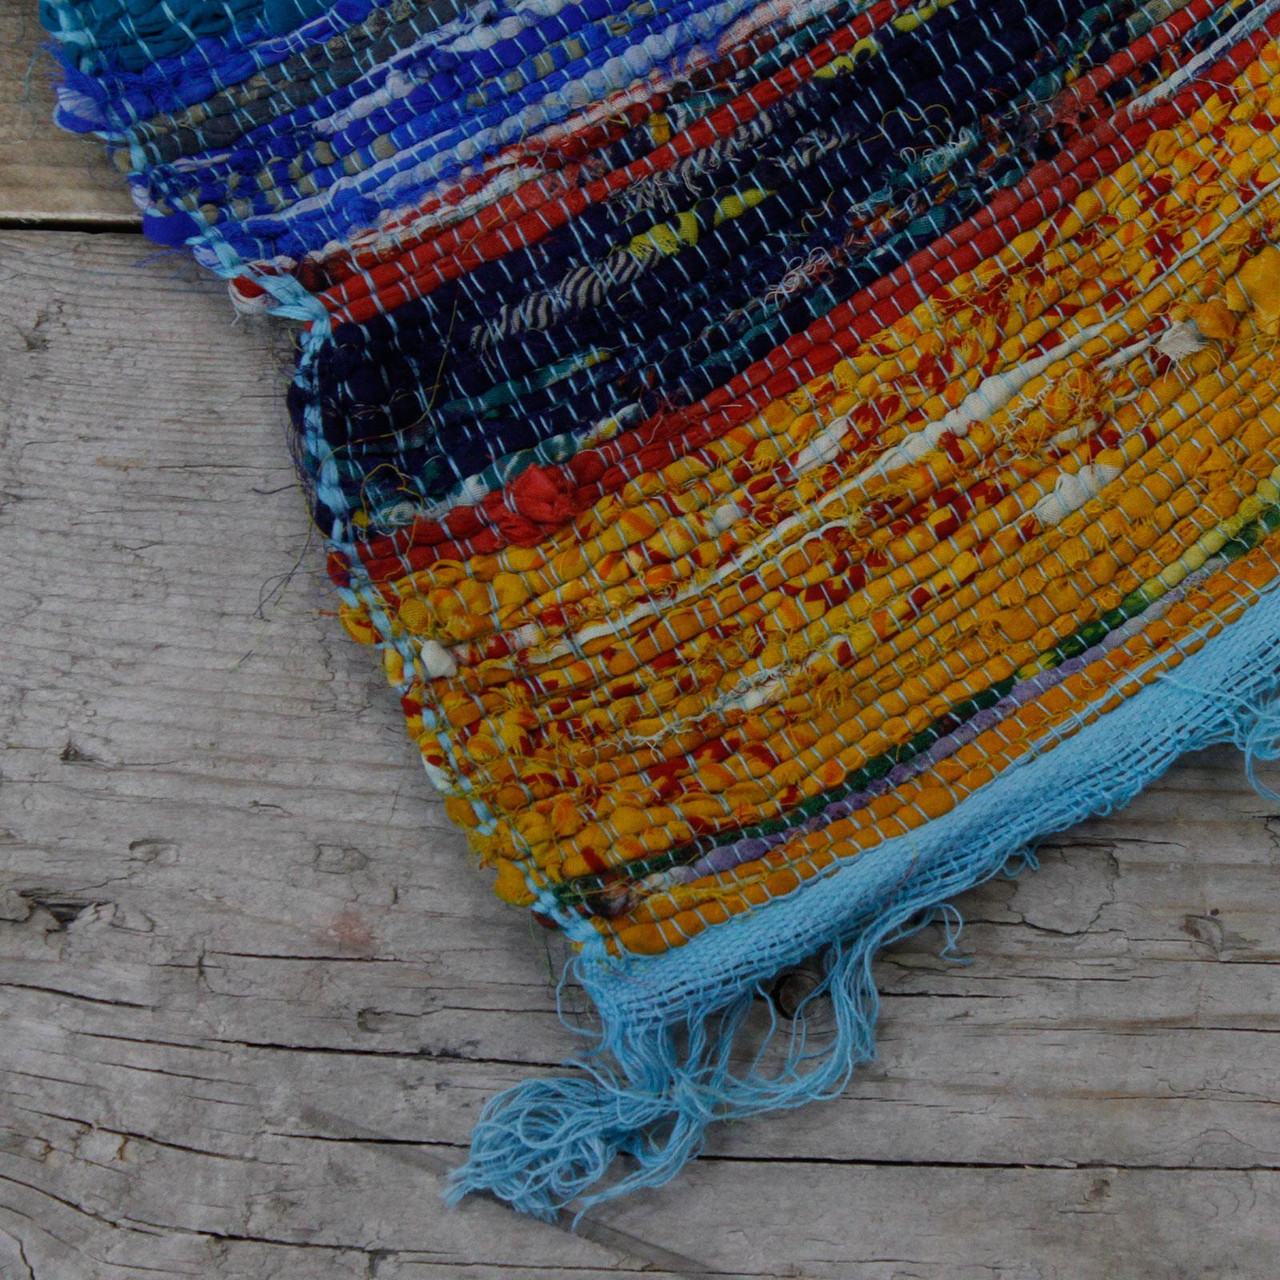 Luxury Rag Rug - Recycled Material - 150cm x 90cm - Hand Woven - Blue